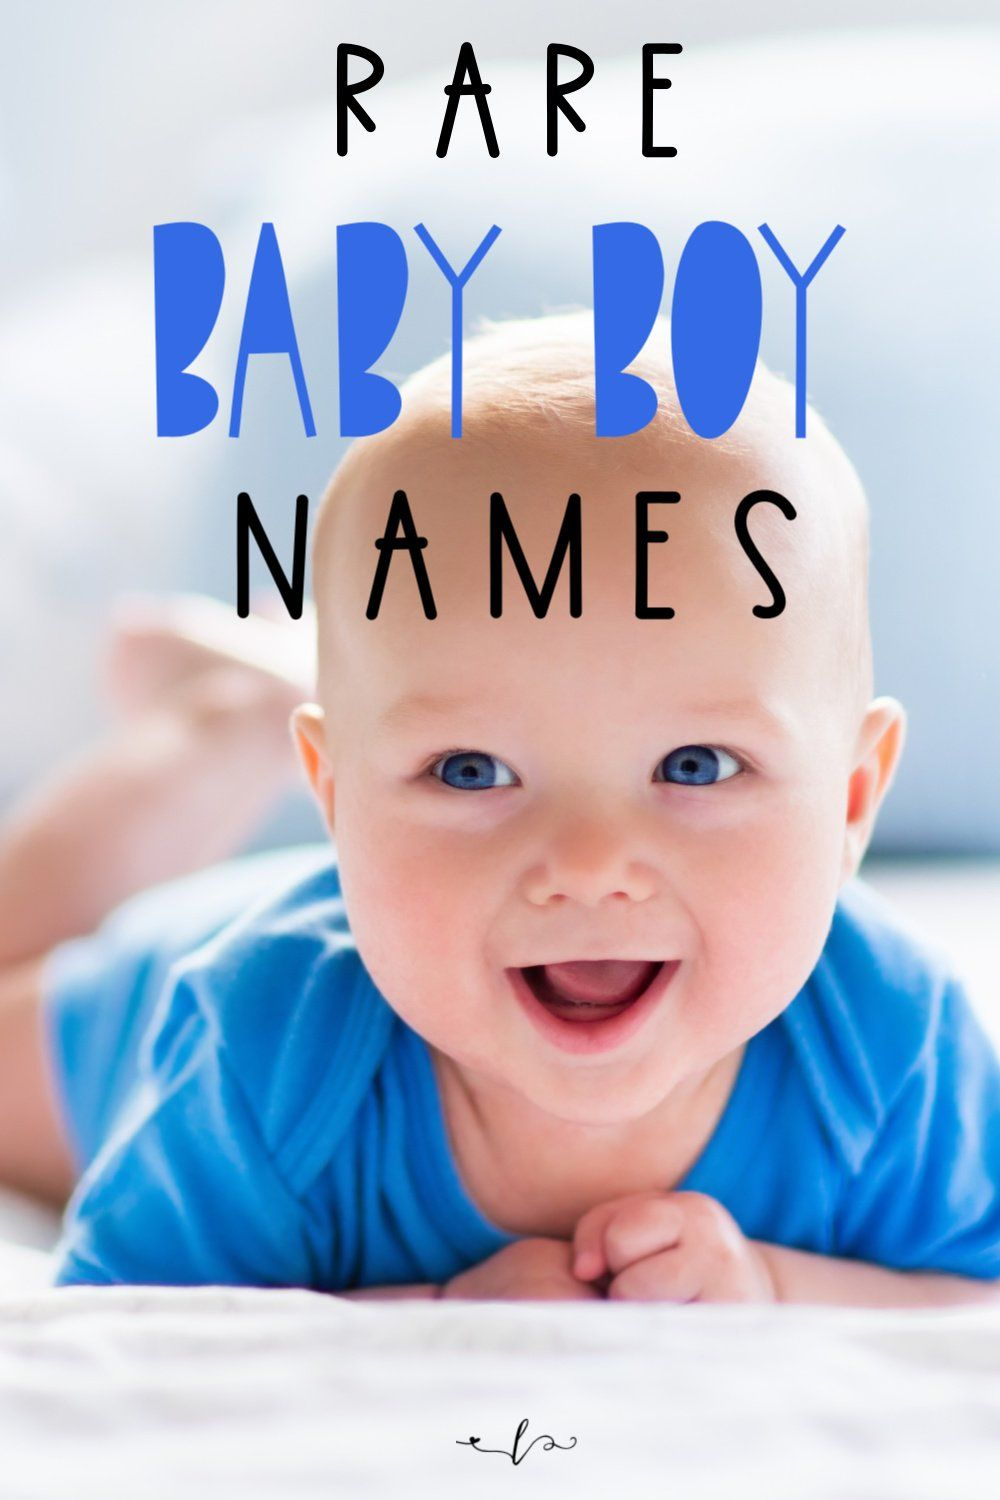 Rare baby boy names that will knock your socks off. These 35+ rare baby boy names will be perfect to use in 2020. These uncommon baby names are perfect for your unique new addition to your family. #babynames #rarebabynames #babyboynames #alifeinlabor